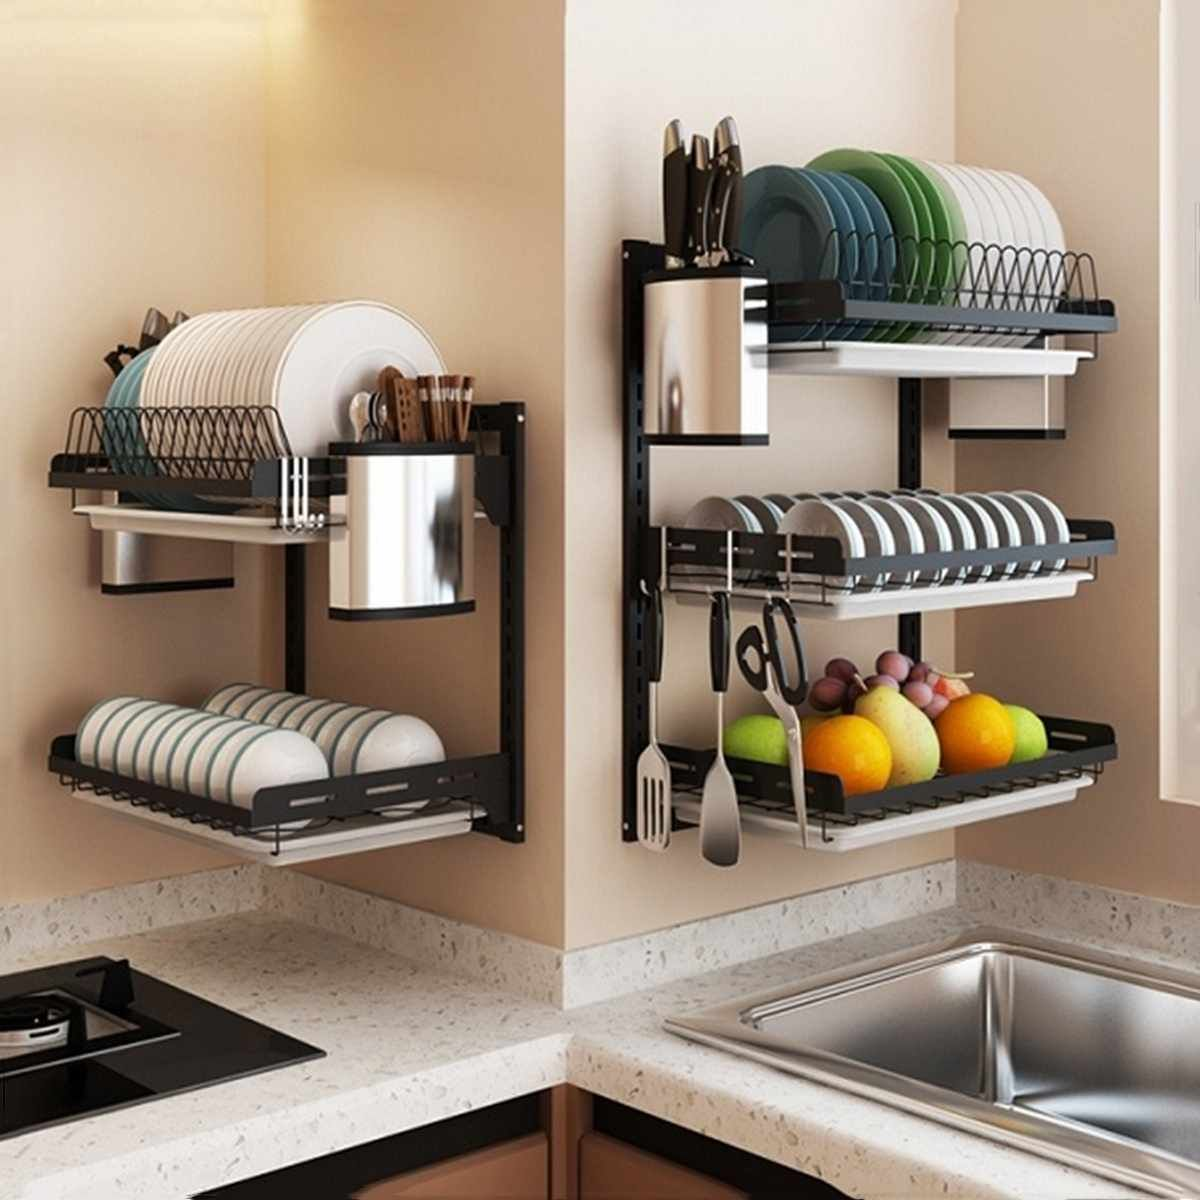 New 304 Stainless Steel Kitchen Dish Rack Plate Cutlery Cup Dish Drainer Drying Rack Wall Mount Kitchen Organizer Storage Holder Racks Holders Aliexpress Kitchen Storage Organization Diy Diy Kitchen Storage